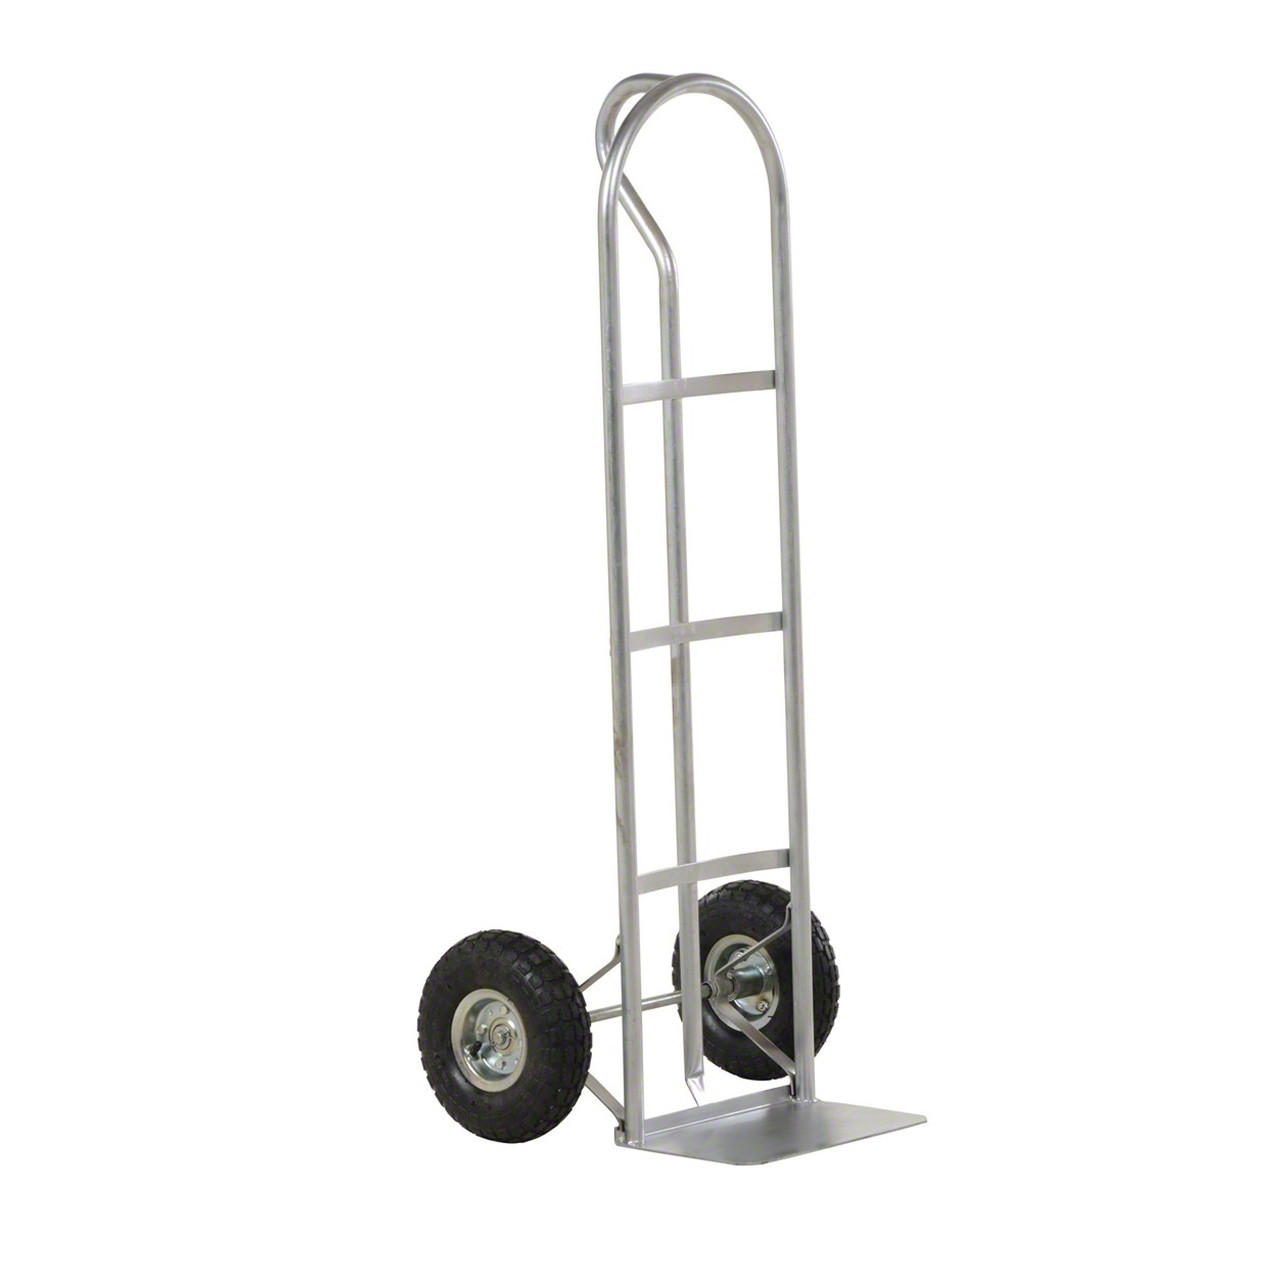 Steel P Handle Hand Truck with Hard Rubber Wheels